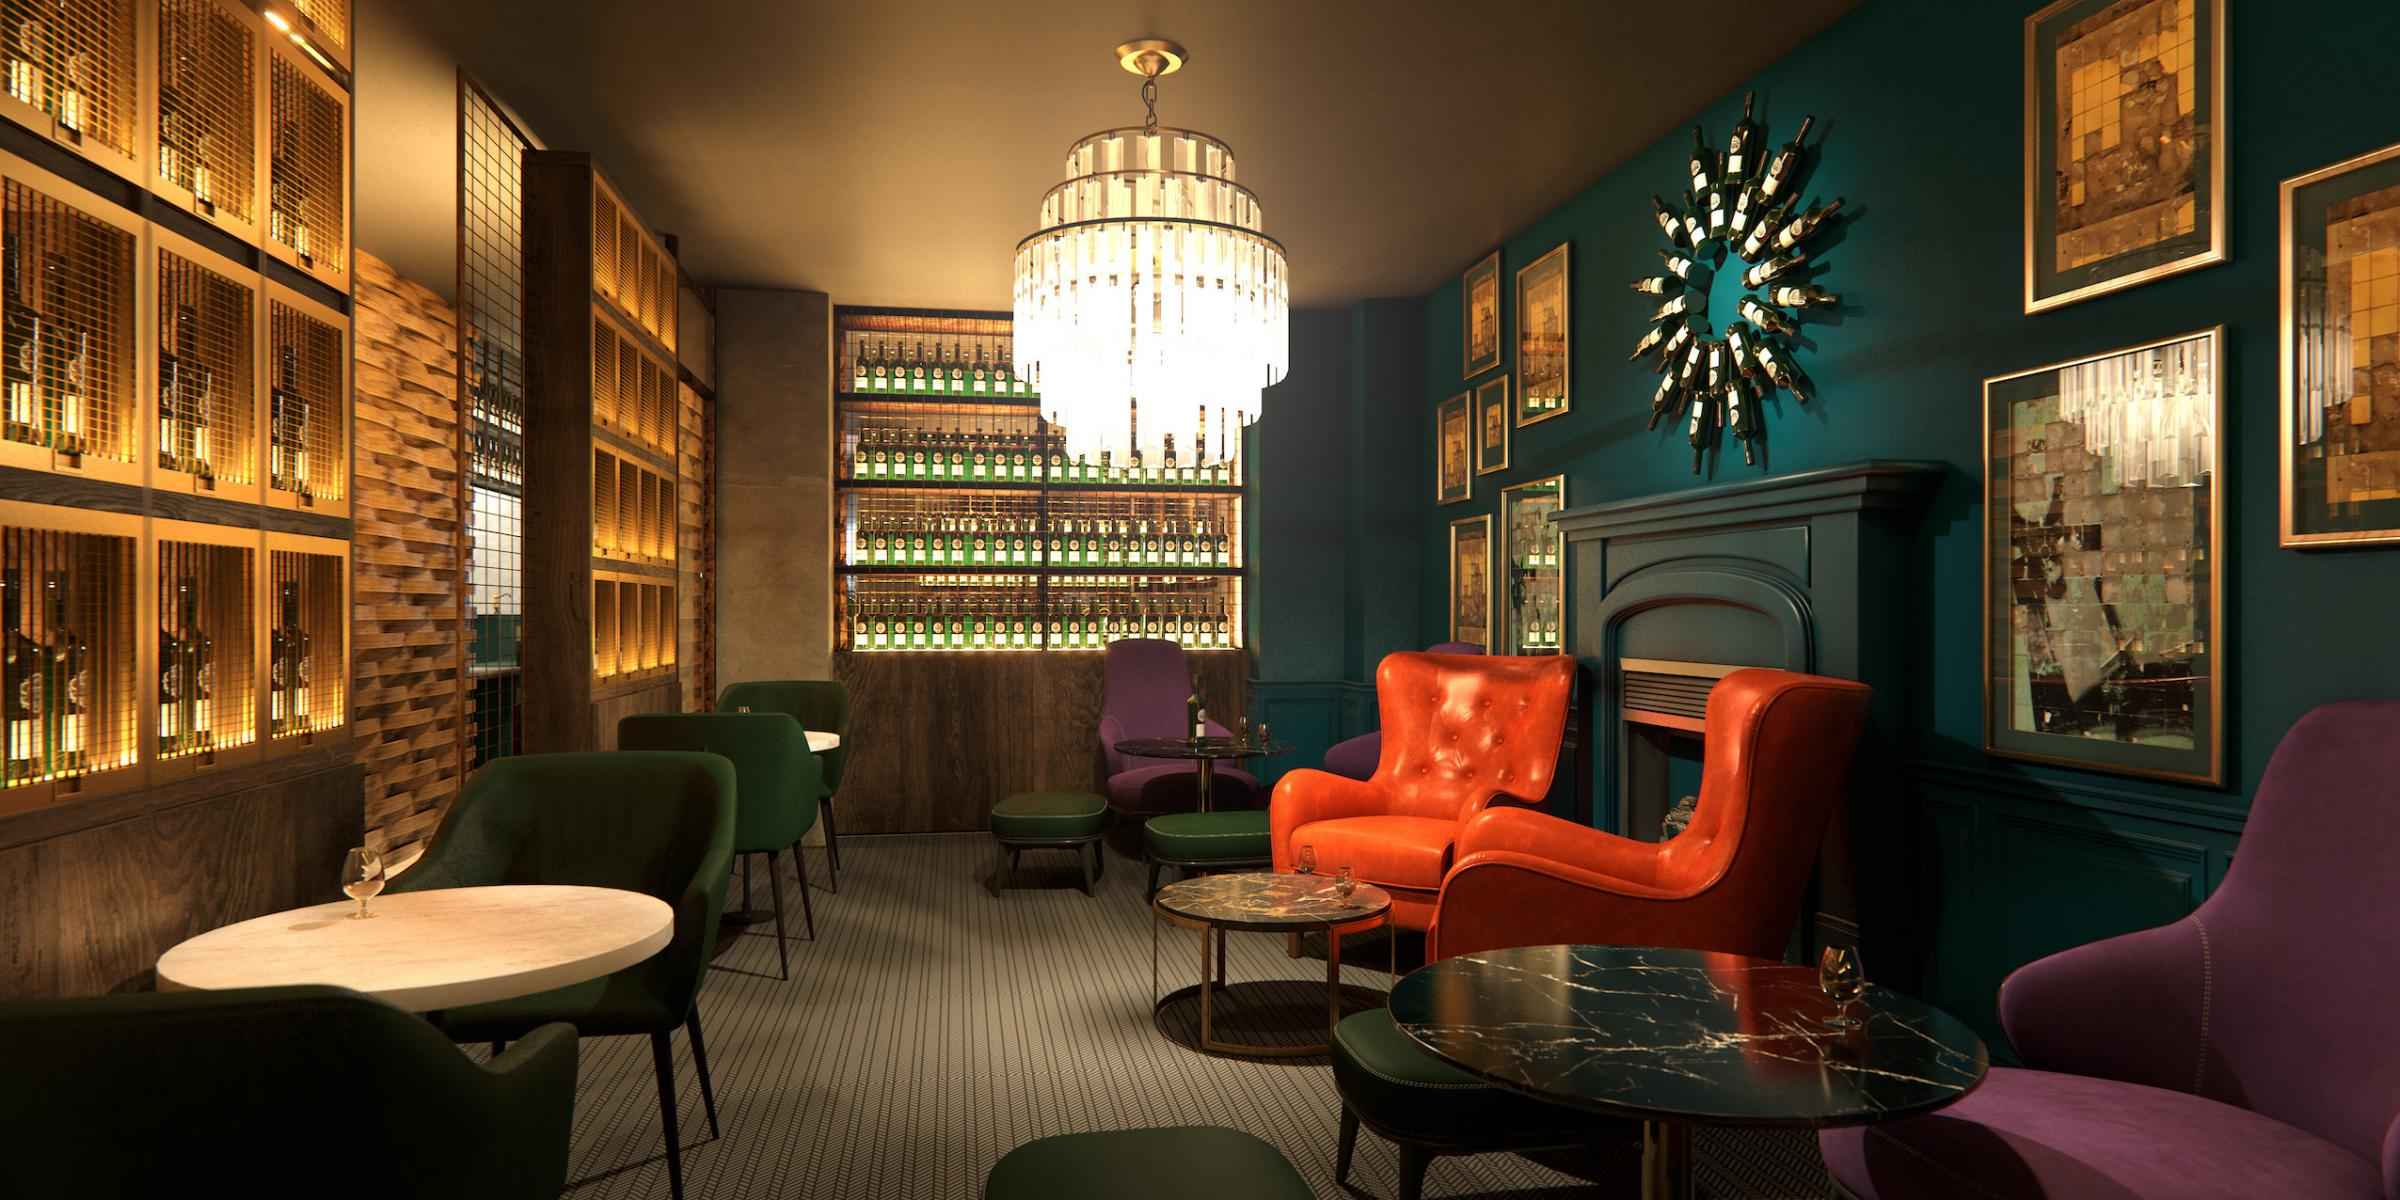 First look: New Glasgow venue unveiled by Scotch Malt Whisky Society